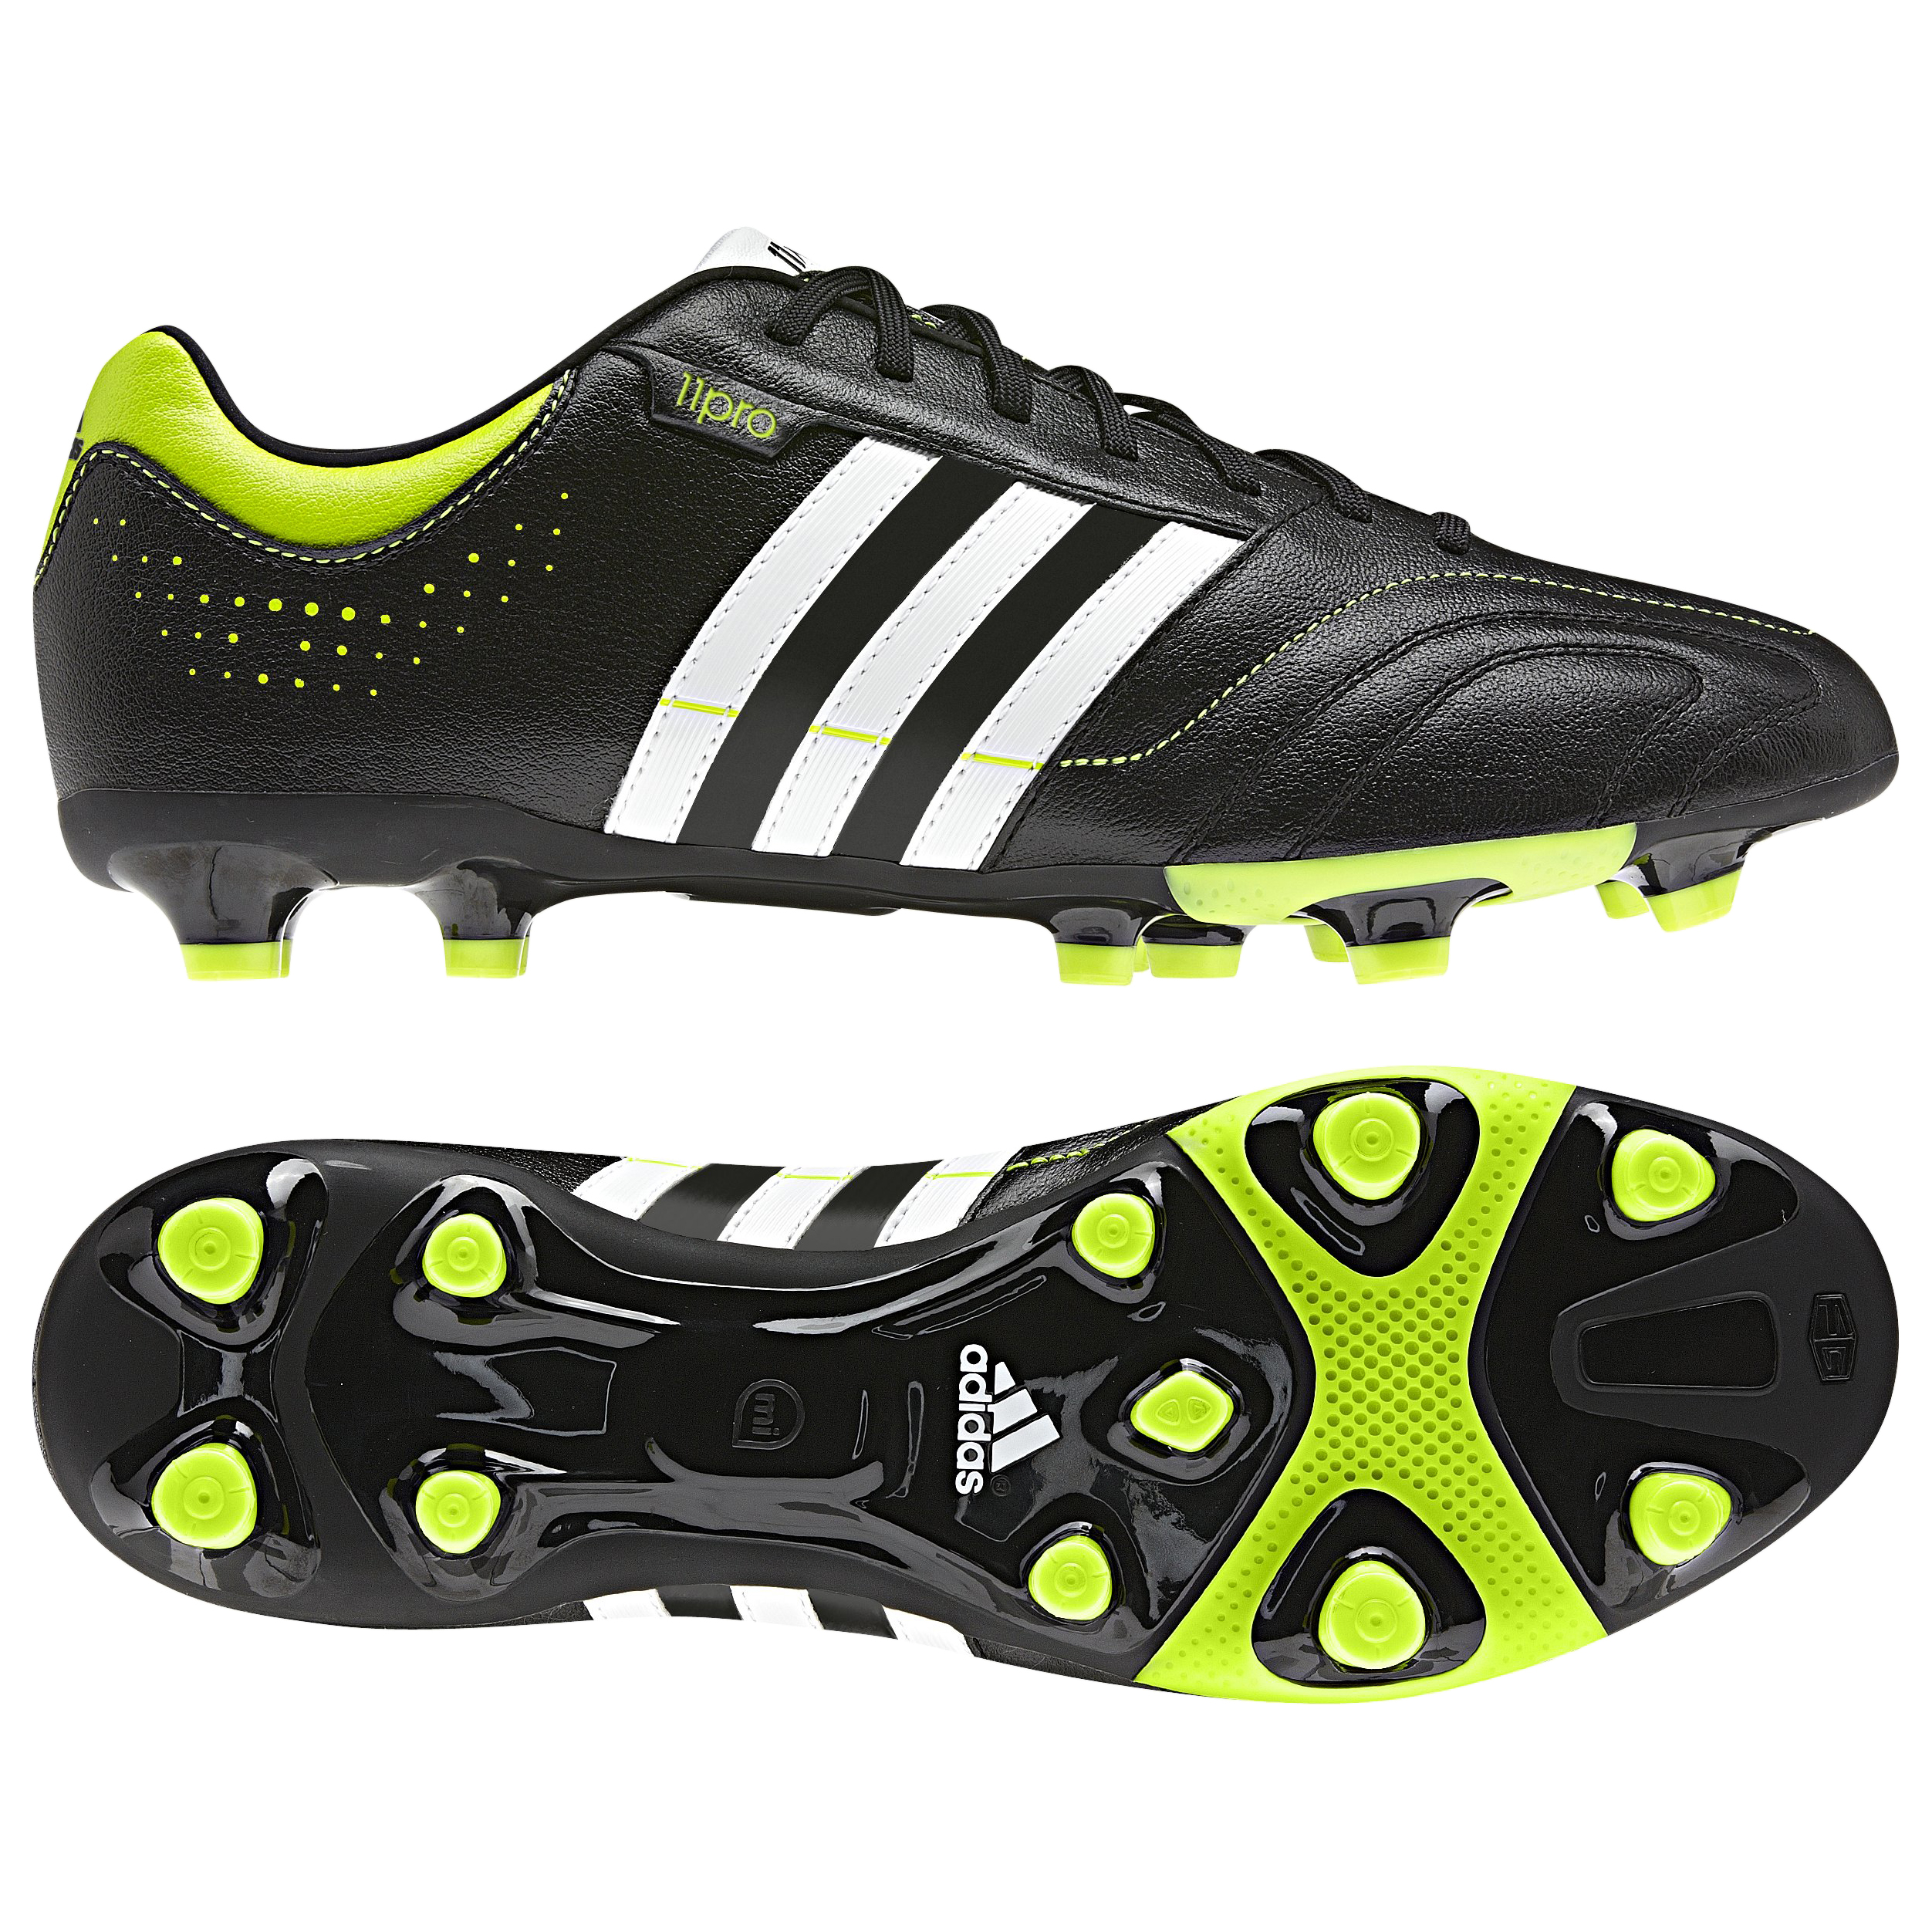 adidas 11Nova TRX Firm Ground Football Boots - Black 1/Running White/Slime